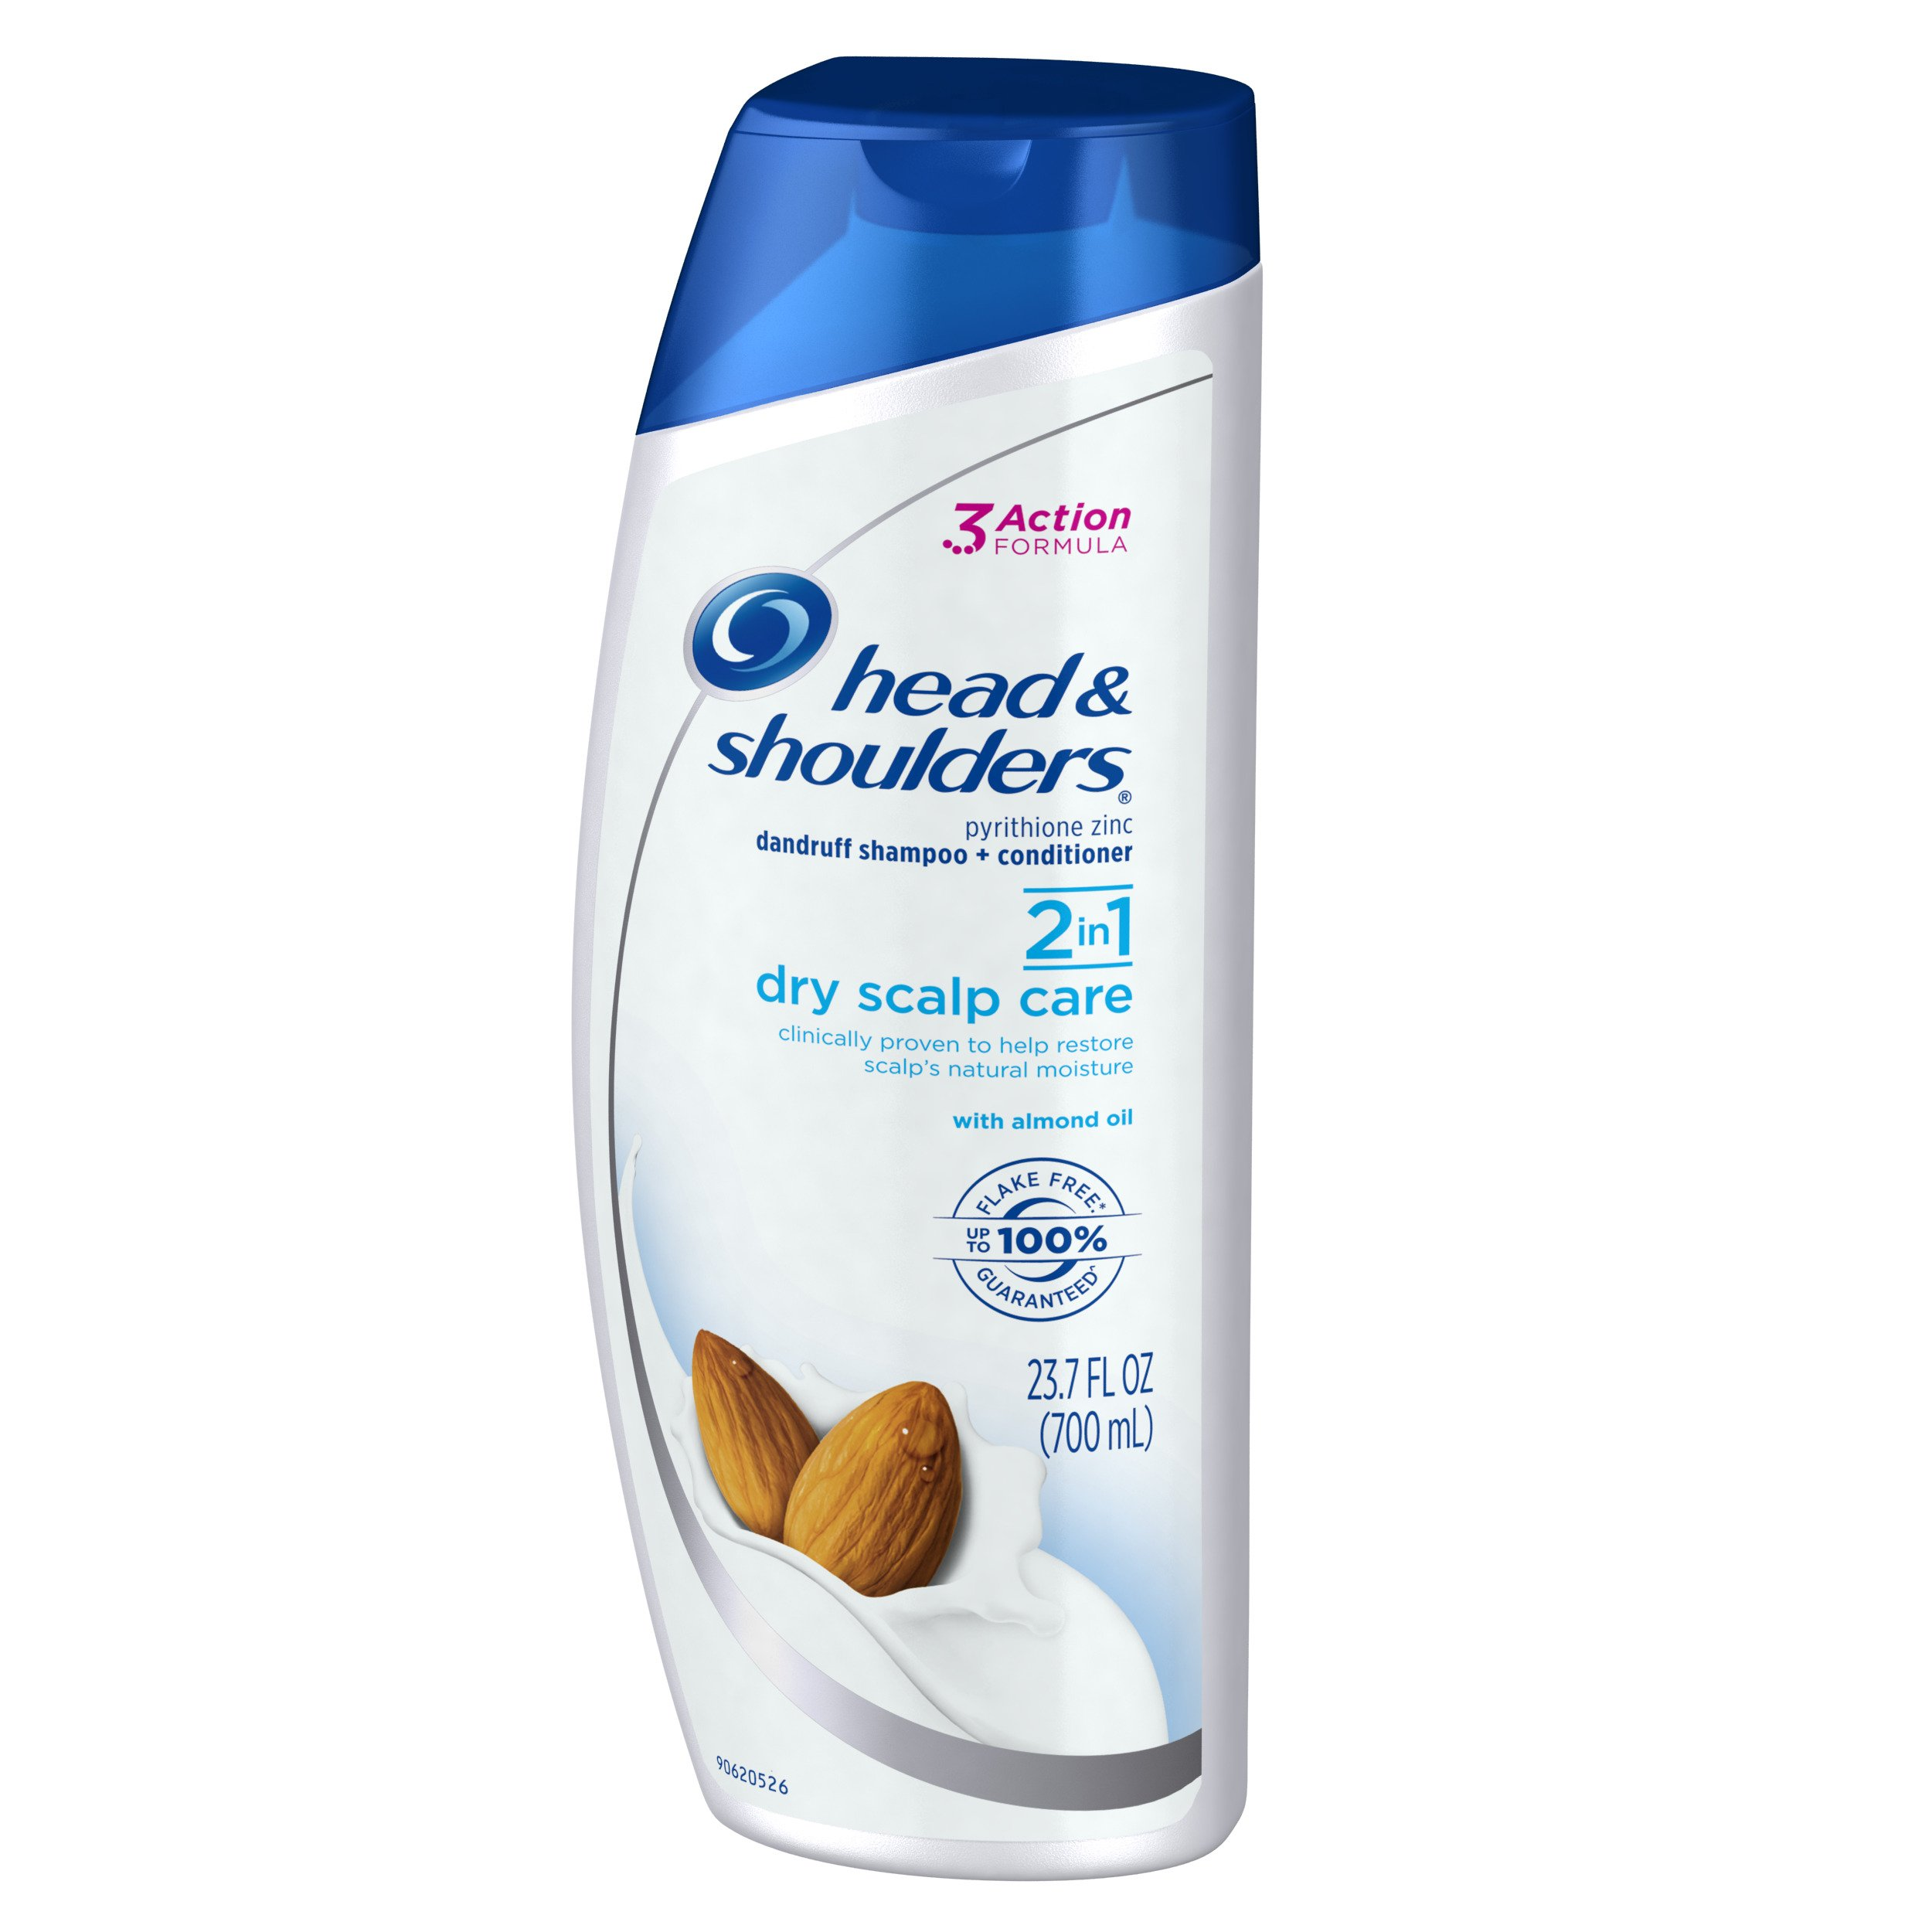 Head & Shoulders Dry Scalp Care with Almond Oil 2-in-1 Anti-Dandruff Shampo,23.7 ounce (Pack of 2) by Head & Shoulders (Image #6)